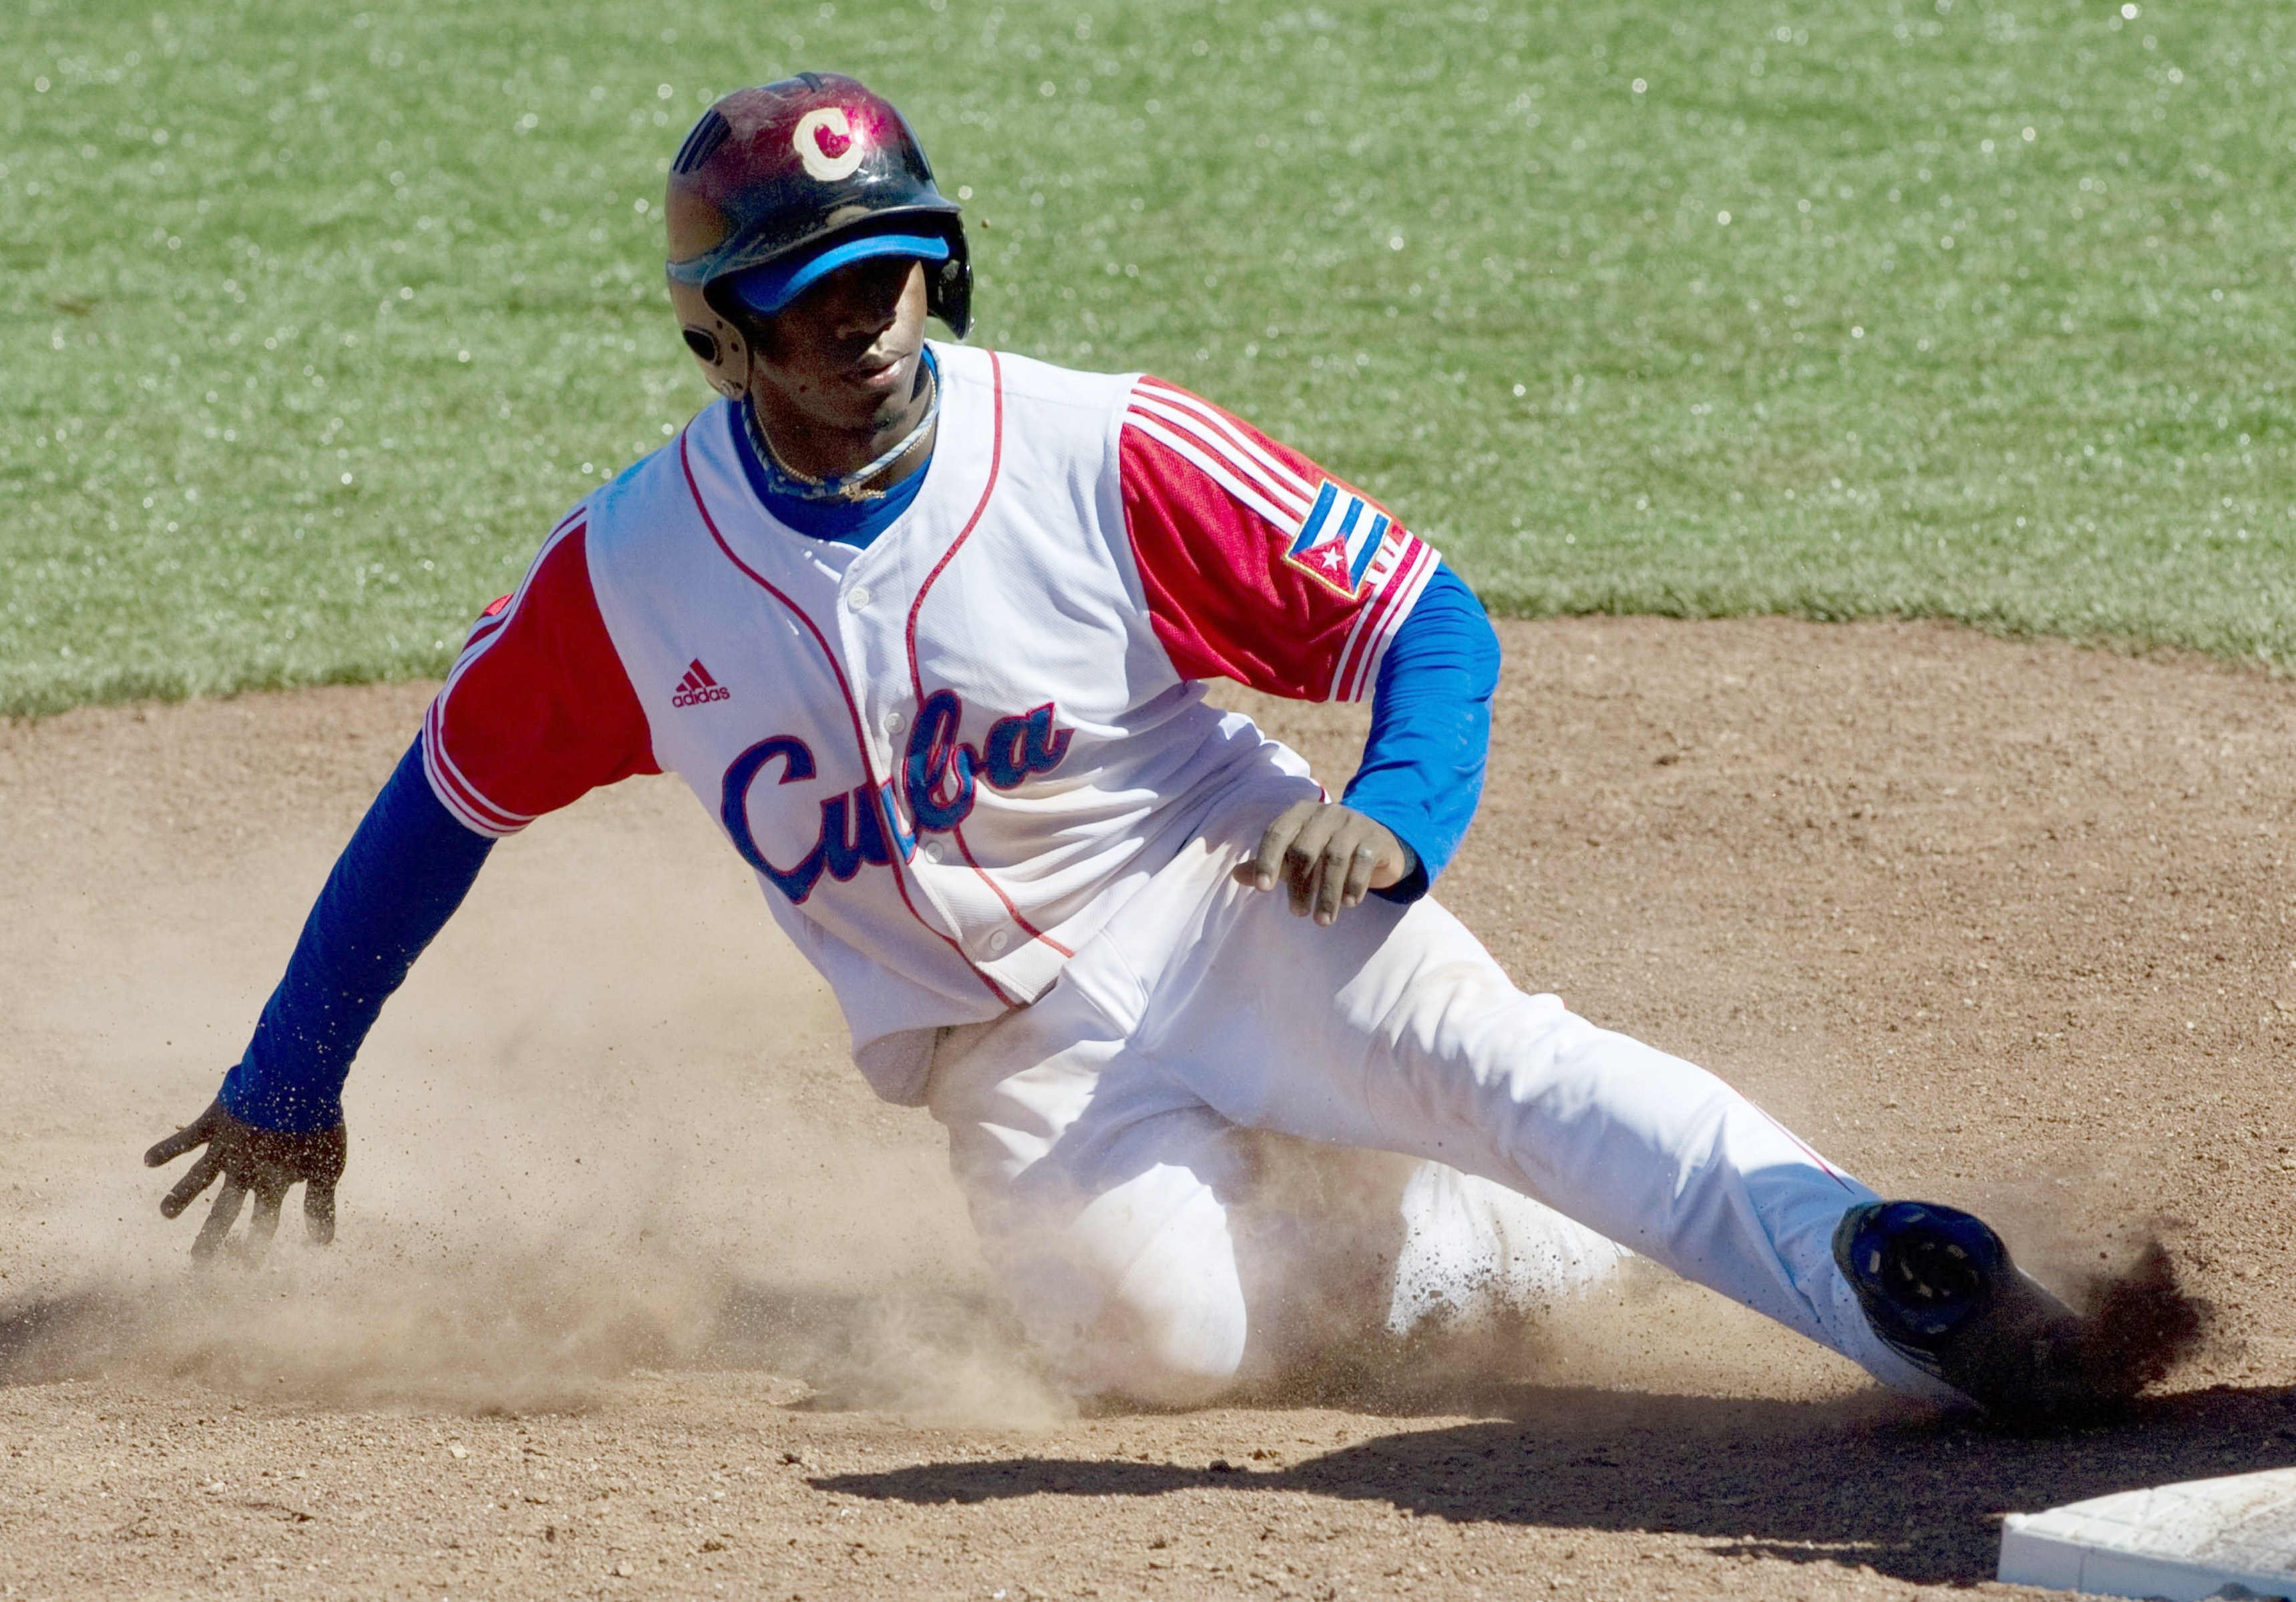 The Red Sox won a bidding war for the services of talented Cuban Rusney Castillo.